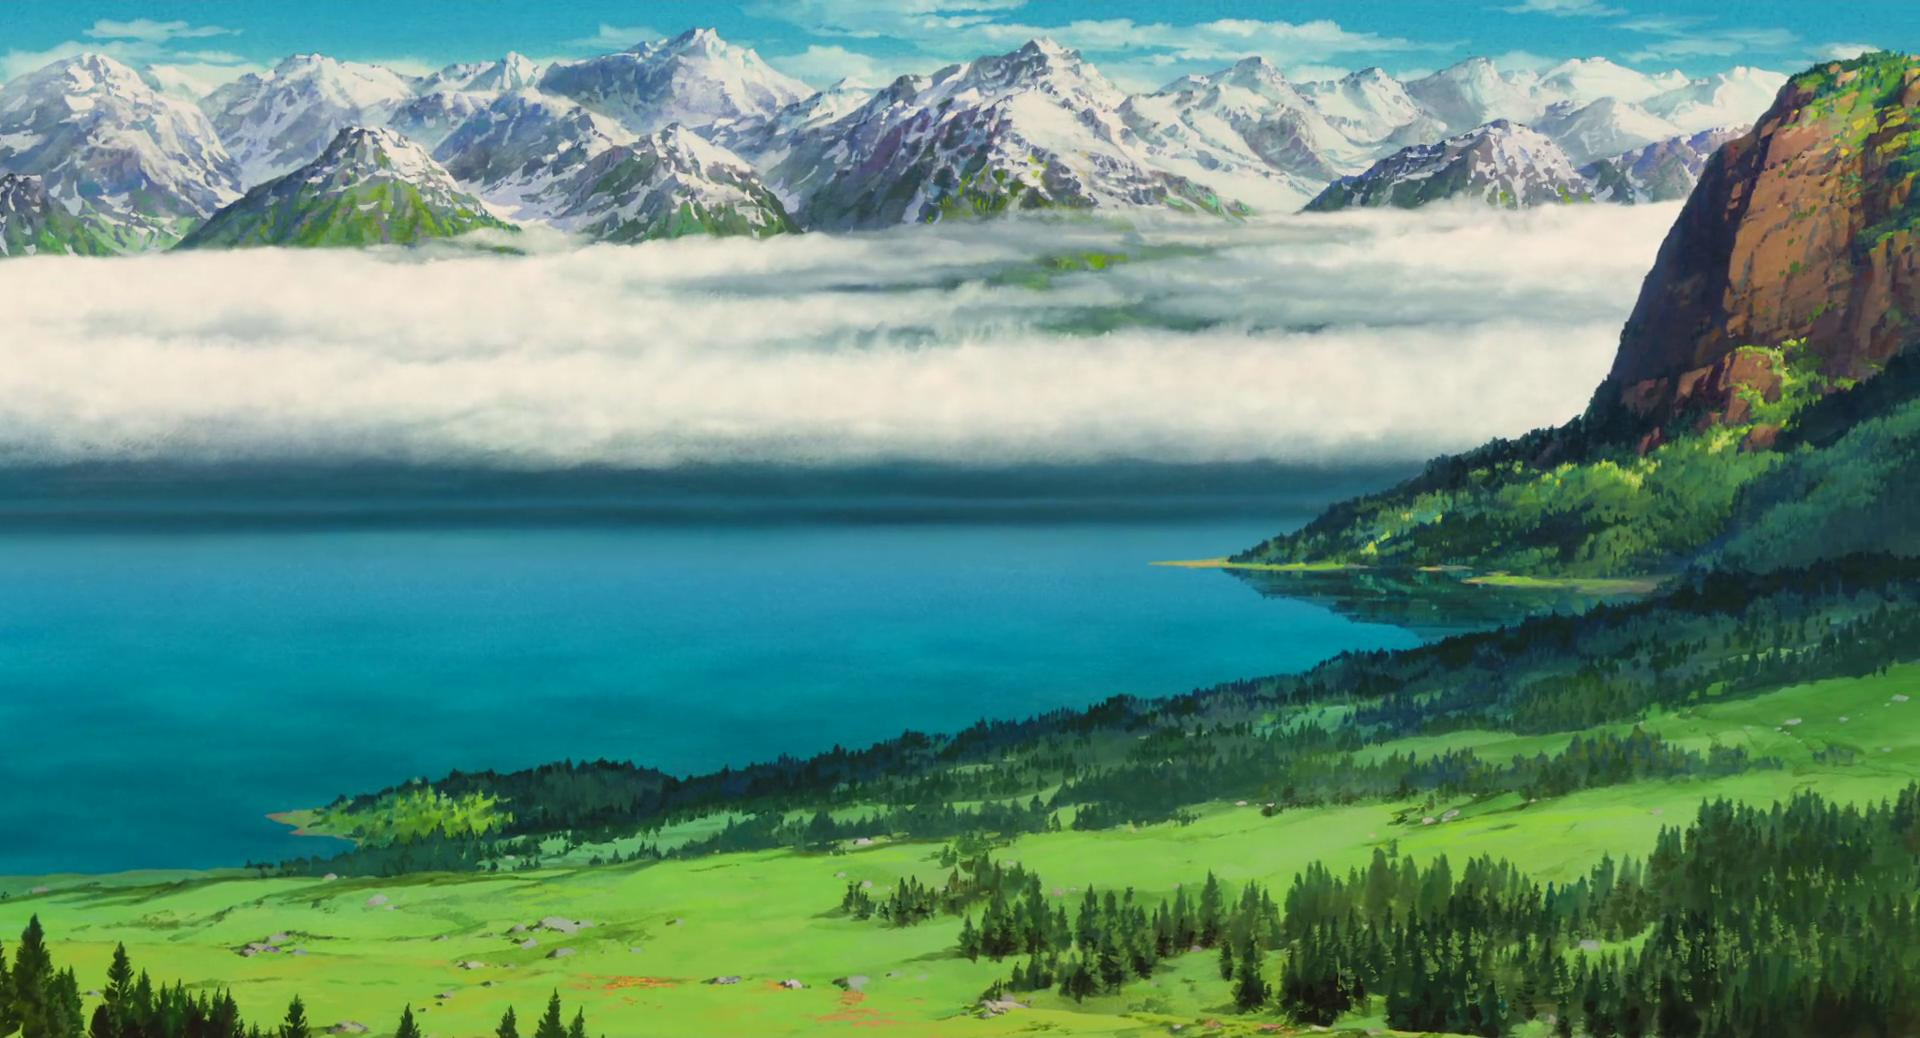 Hd Ghibli Wallpaper 1080: Studio Ghibli Wallpapers